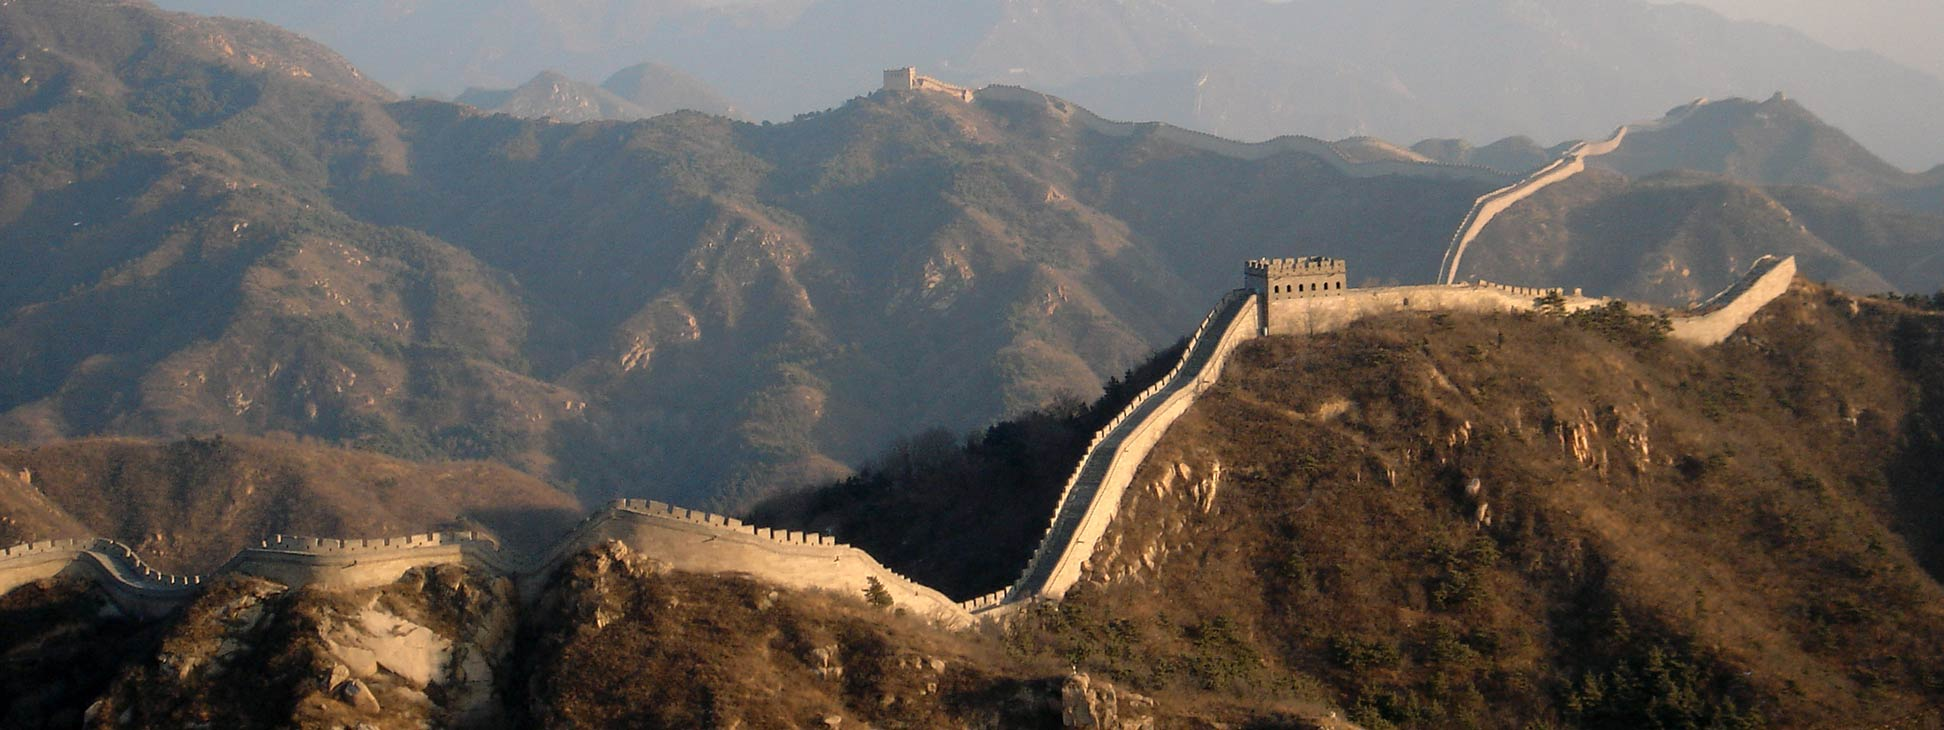 The Great Wall of China is a well known landmark in the Middle Kingdom.